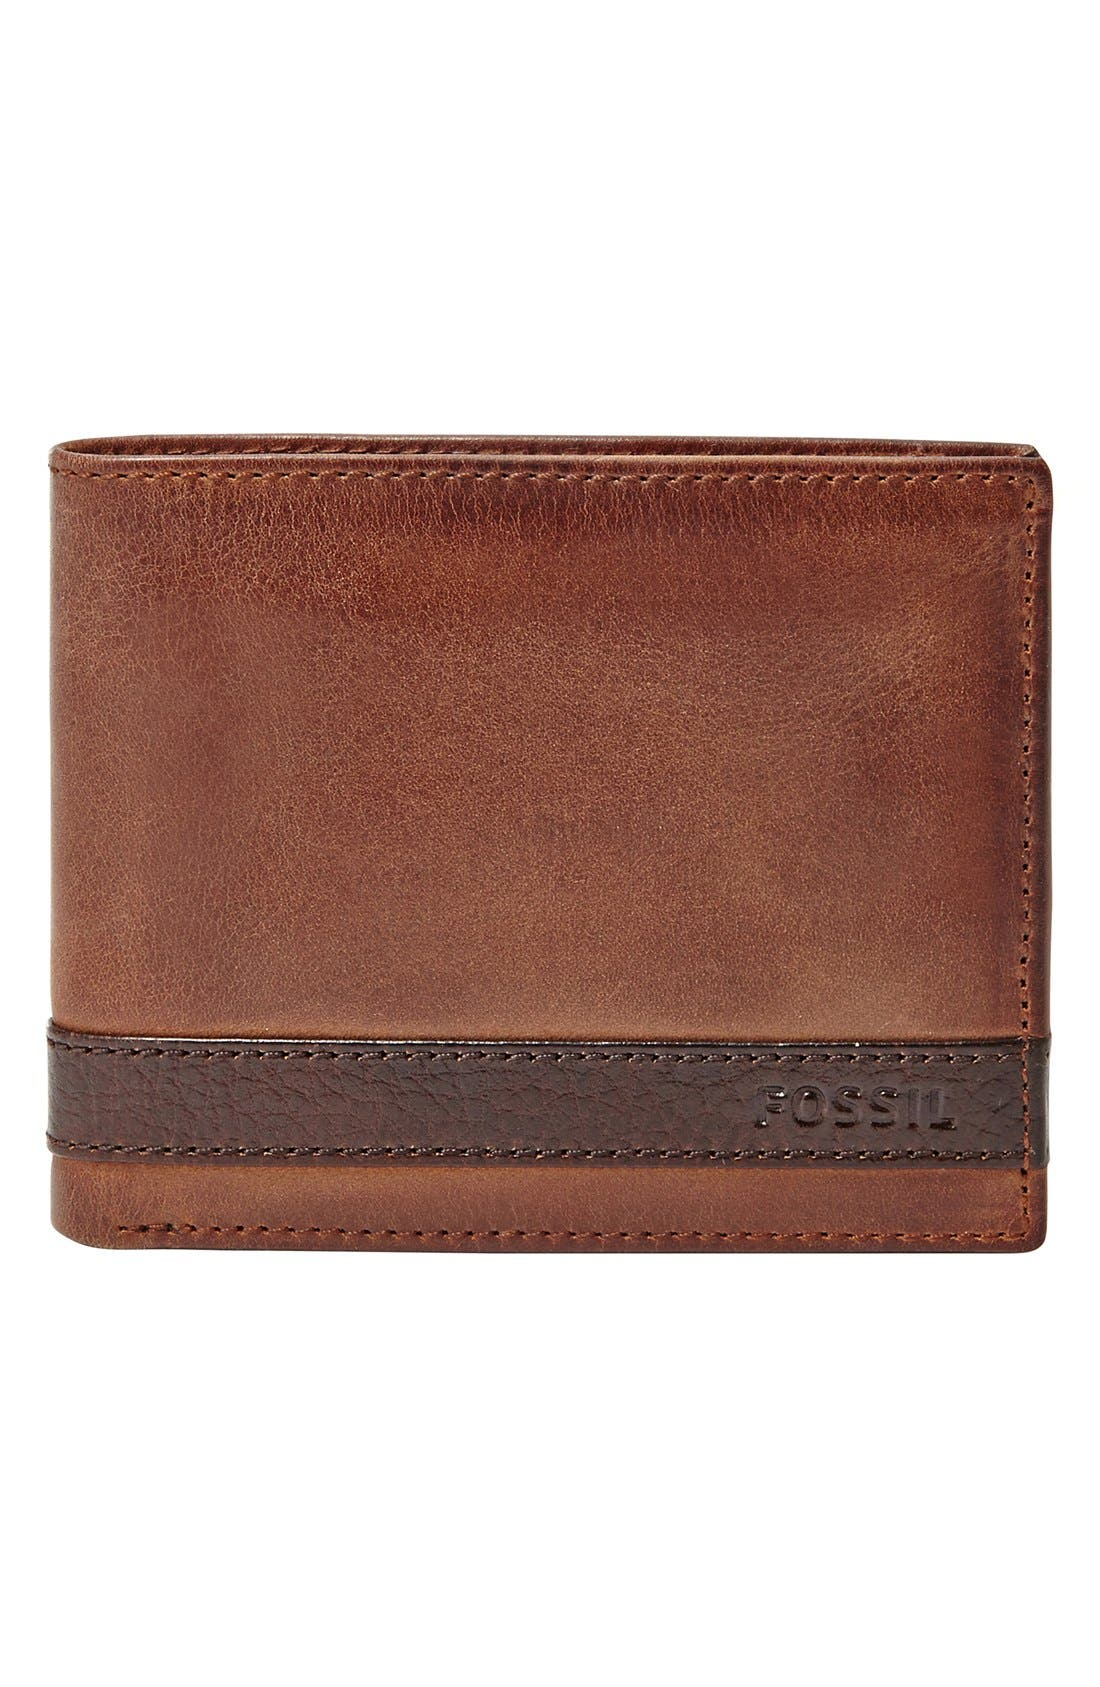 'Quinn' Leather Bifold Wallet,                         Main,                         color, BROWN